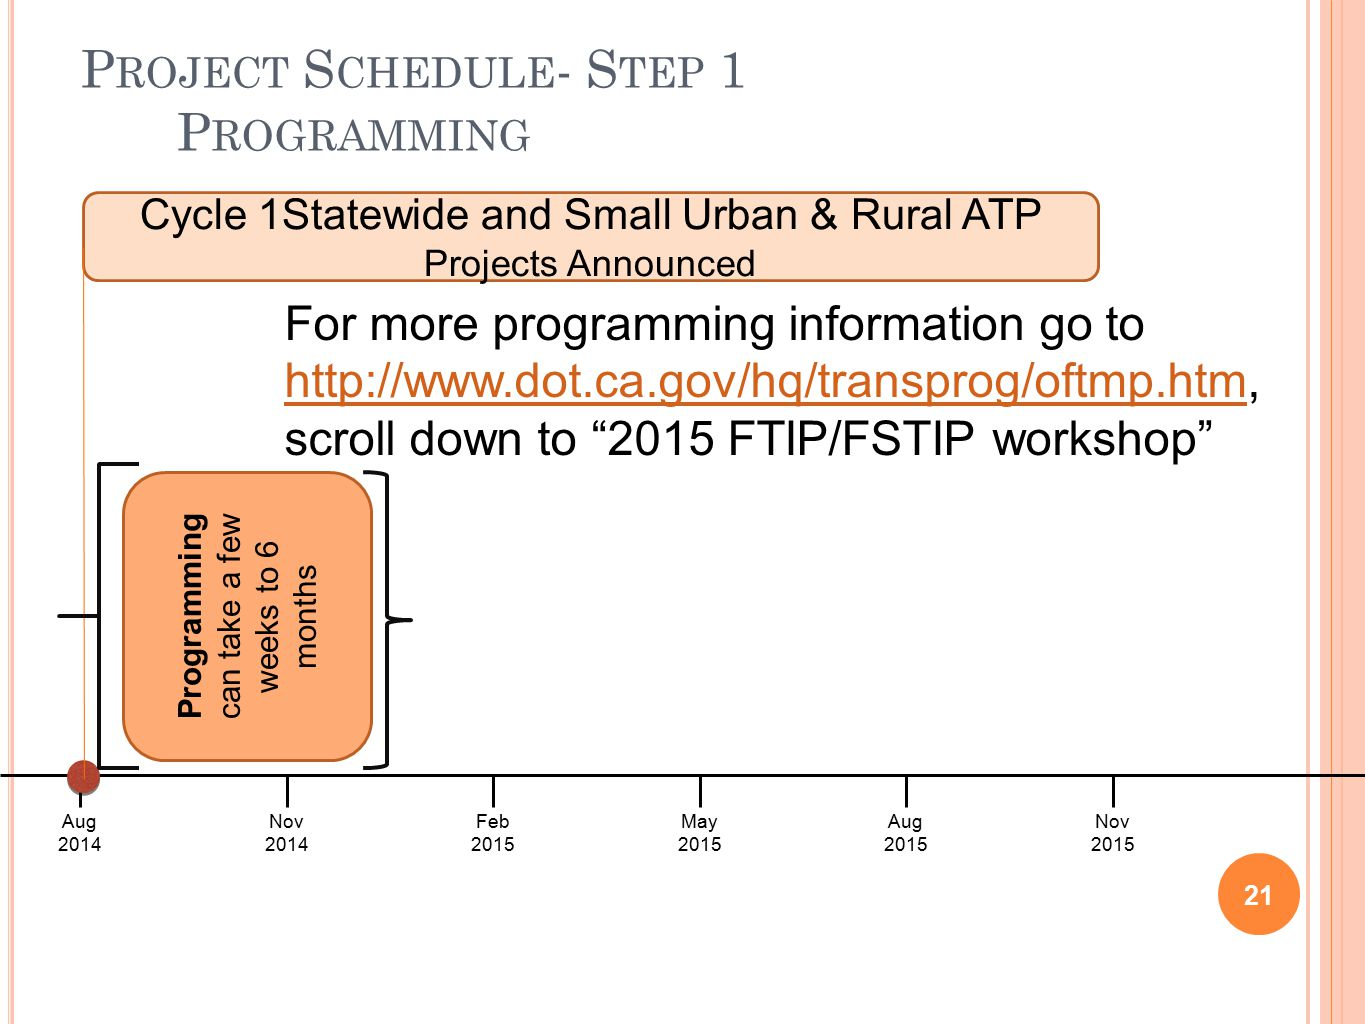 Aug 2014 Nov 2015 Nov 2014 Feb 2015 May 2015 Aug 2015 Cycle 1Statewide and Small Urban & Rural ATP Projects Announced P ROJECT S CHEDULE - S TEP 1 P ROGRAMMING 21 For more programming information go to http://www.dot.ca.gov/hq/transprog/oftmp.htmhttp://www.dot.ca.gov/hq/transprog/oftmp.htm, scroll down to 2015 FTIP/FSTIP workshop Programming can take a few weeks to 6 months